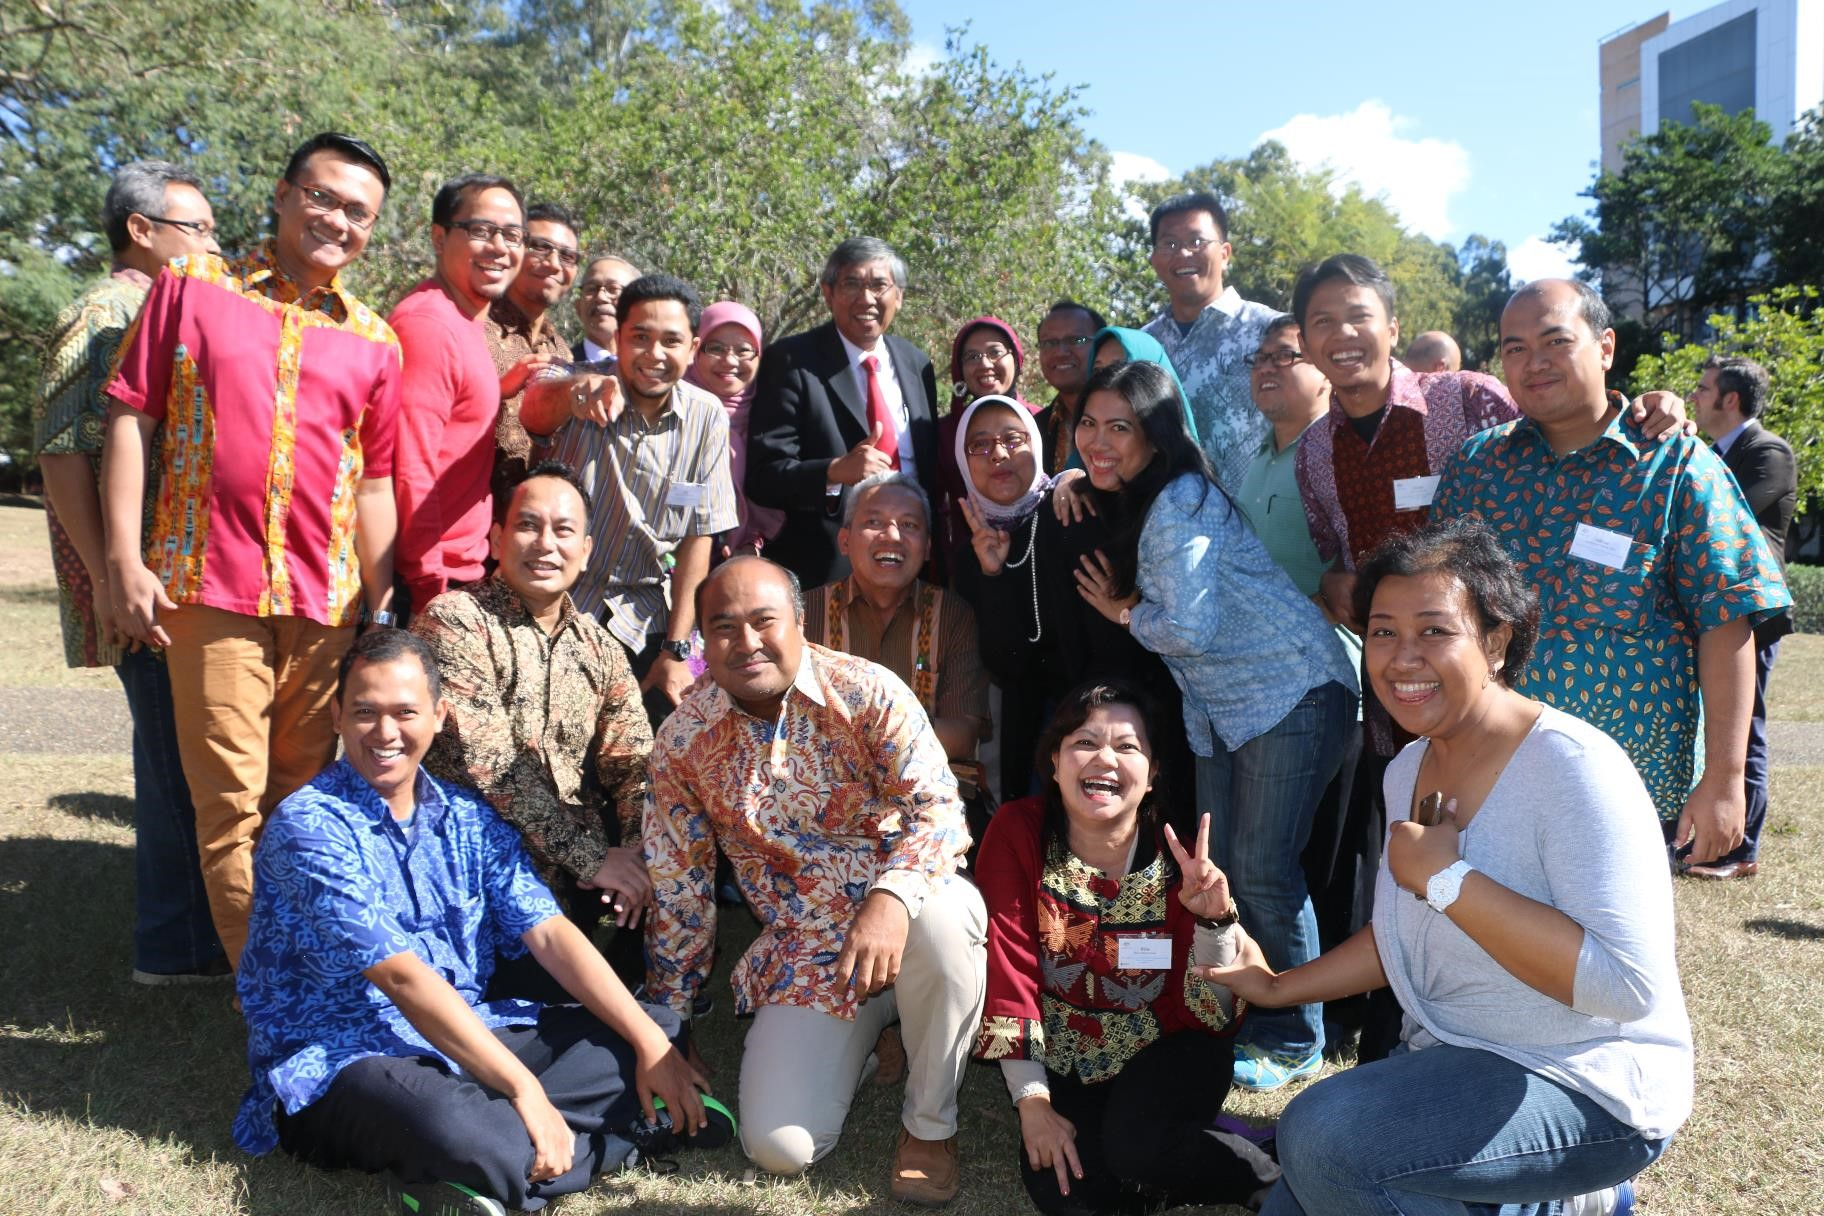 Vice Finance Minister Republic of Indonesia Professor Mardiasmo with participants of Strengthening the Public Policy Making Process short course